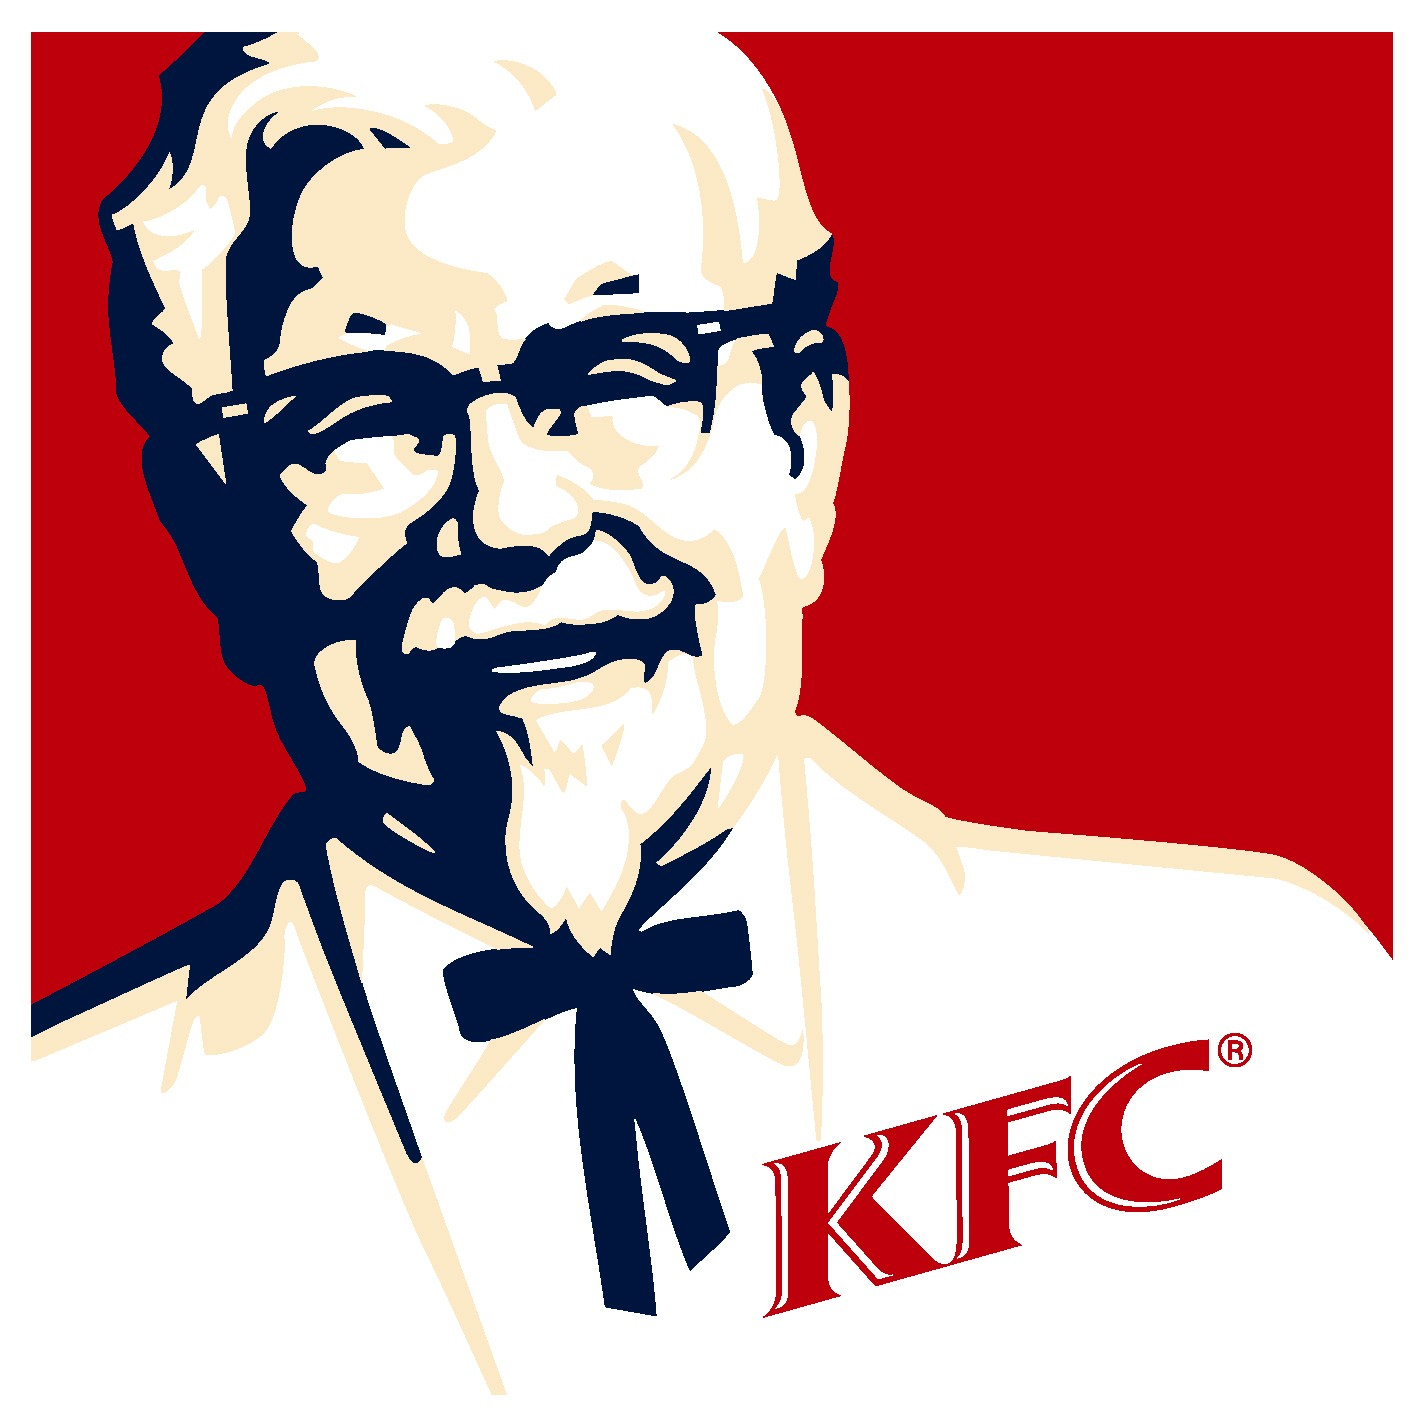 Kfc logo Wallpaper